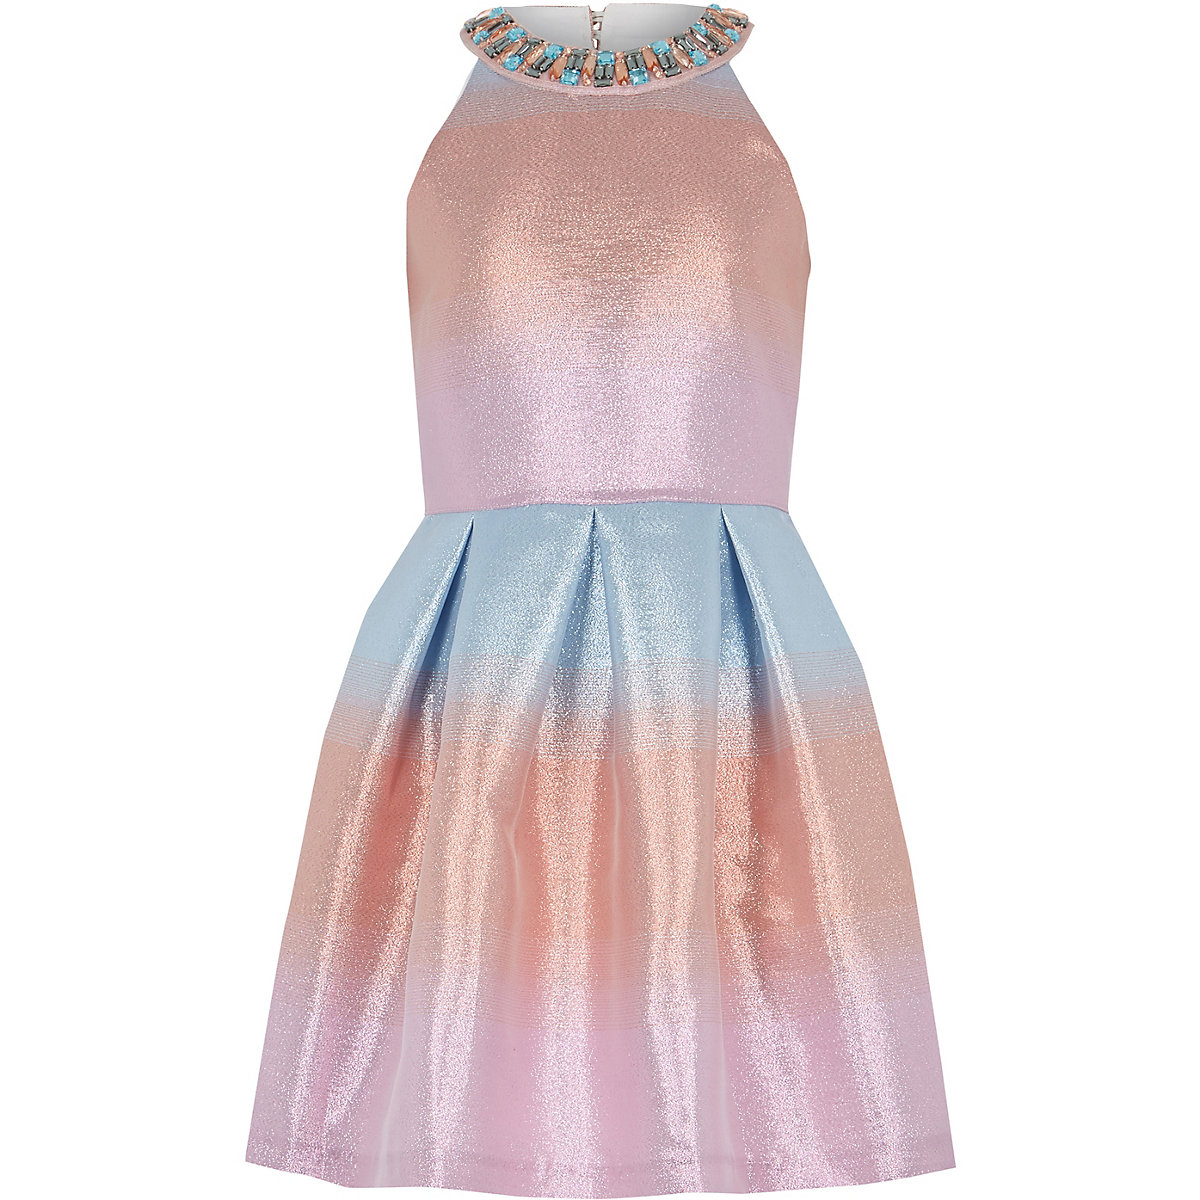 Girls pink ombre metallic prom dress